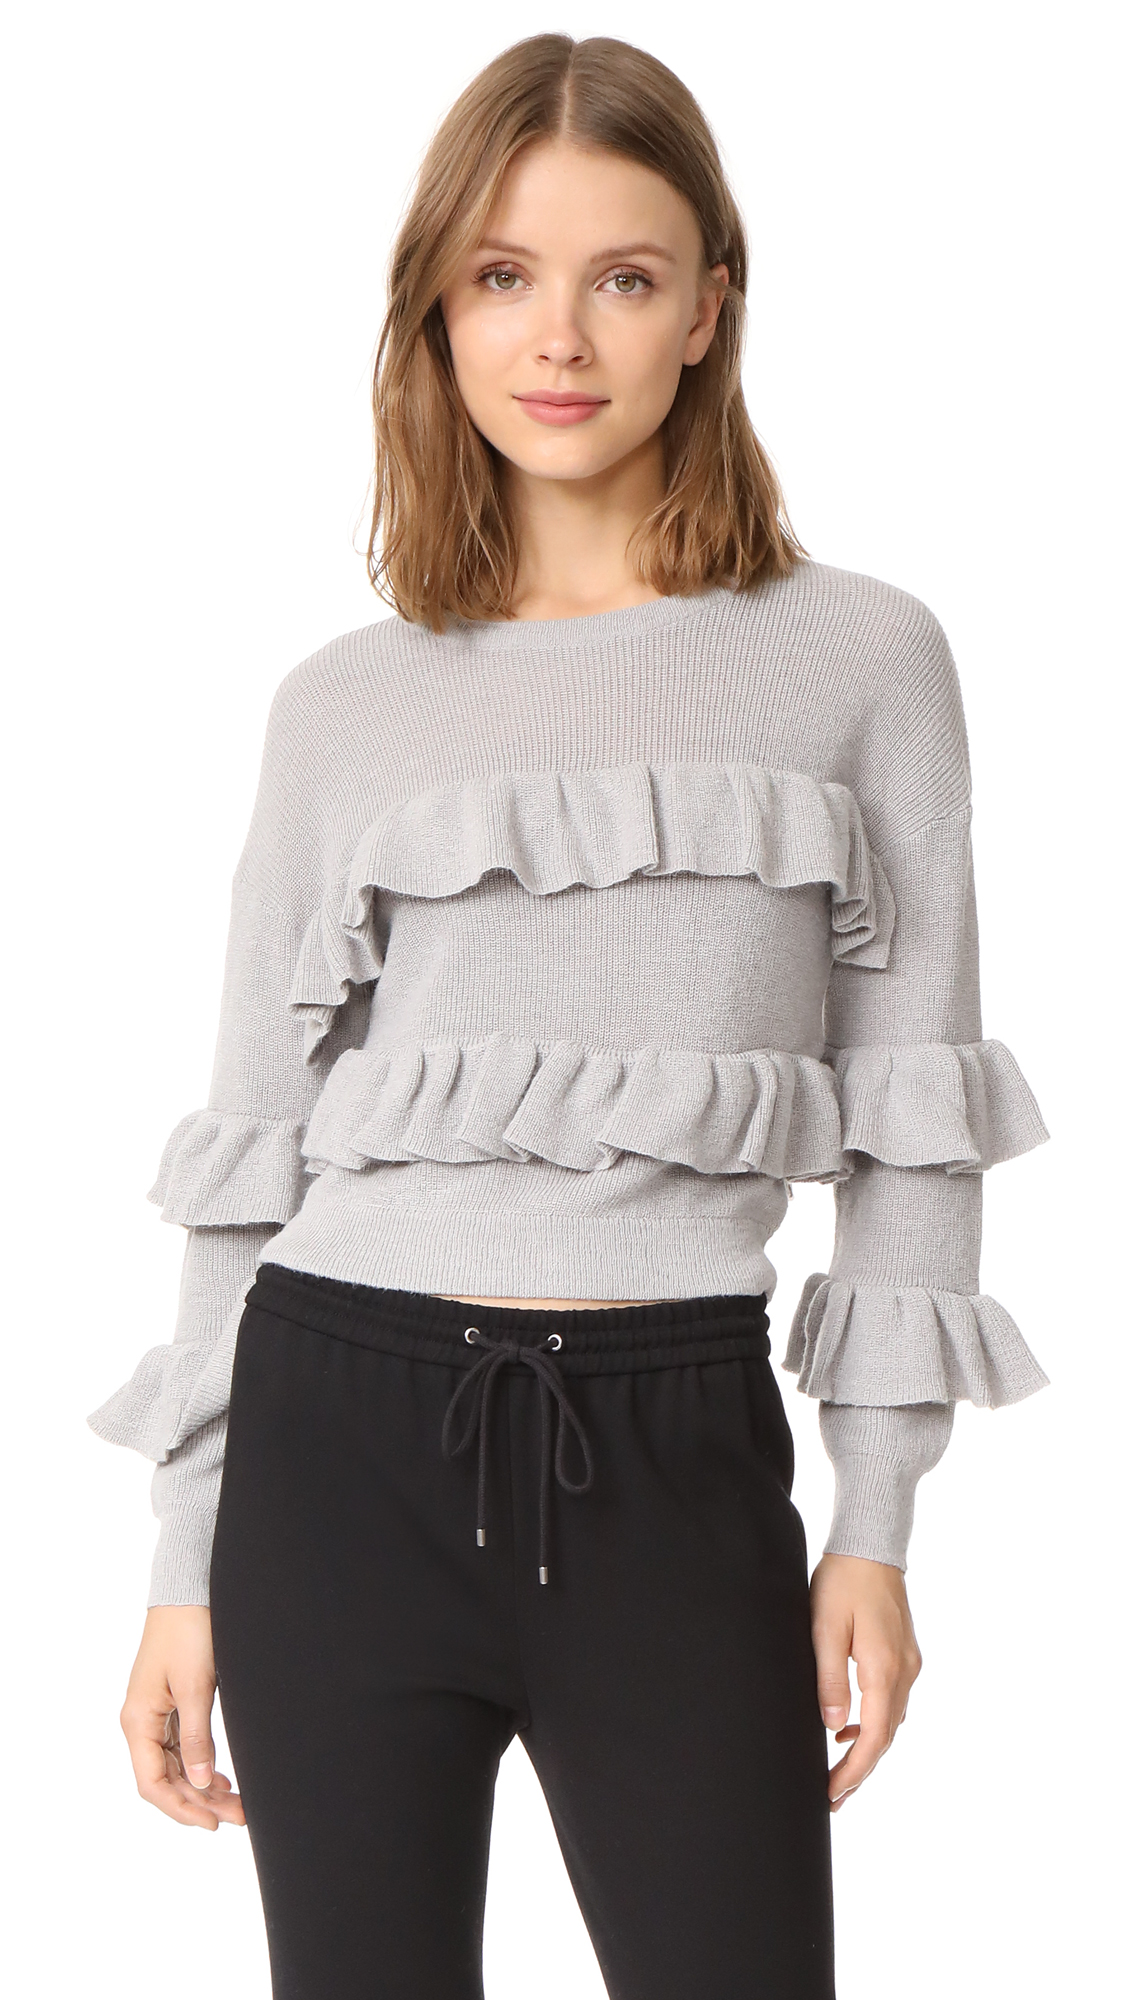 ENGLISH FACTORY Ruffle Sweater - Grey